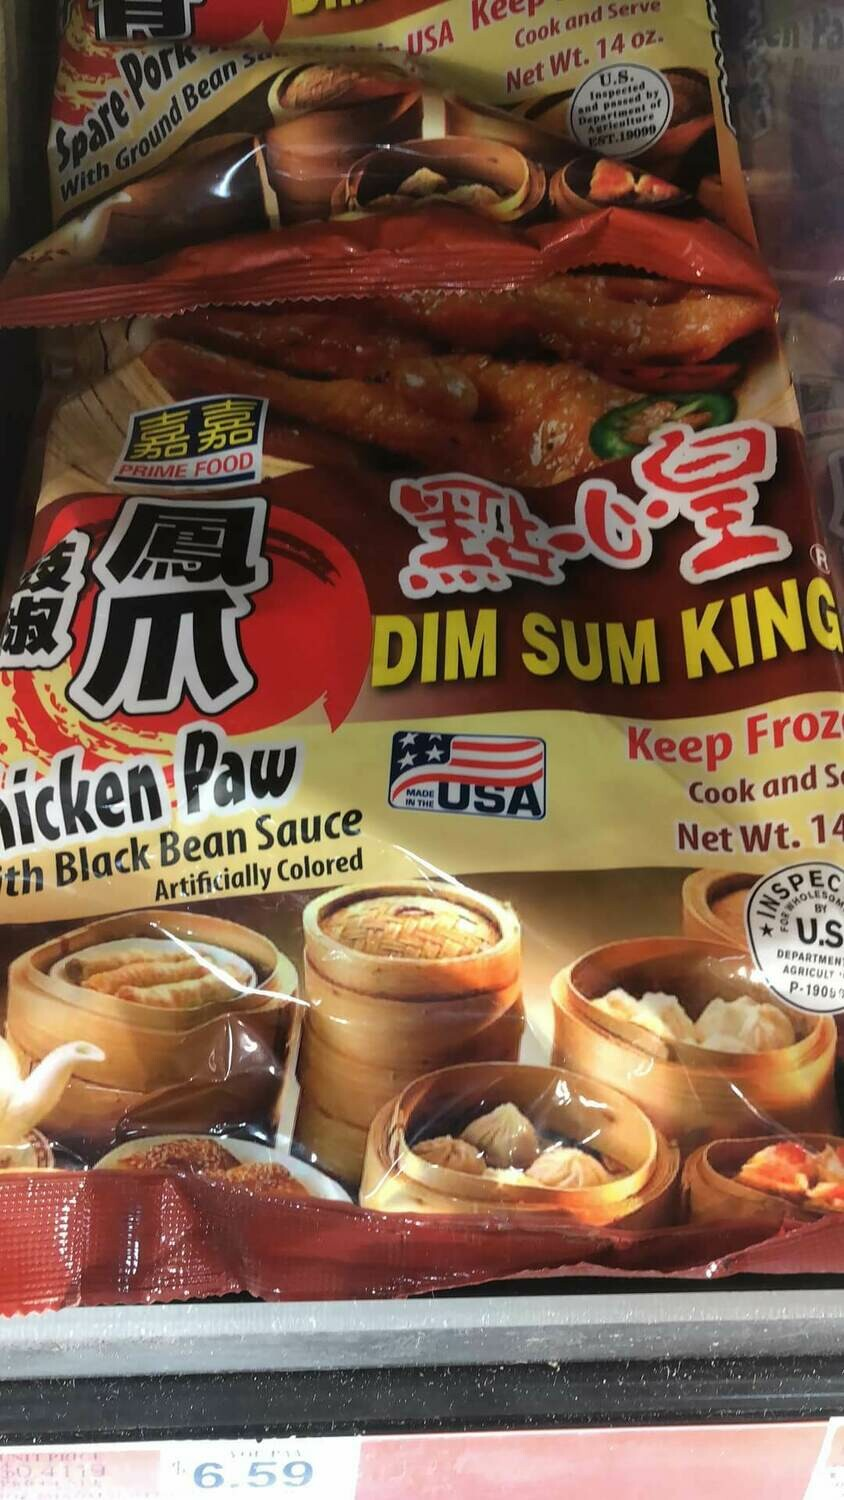 【RBF】Dim Sum King Chicken Paw with Black Bean Sauce点心皇 凤爪 豉椒